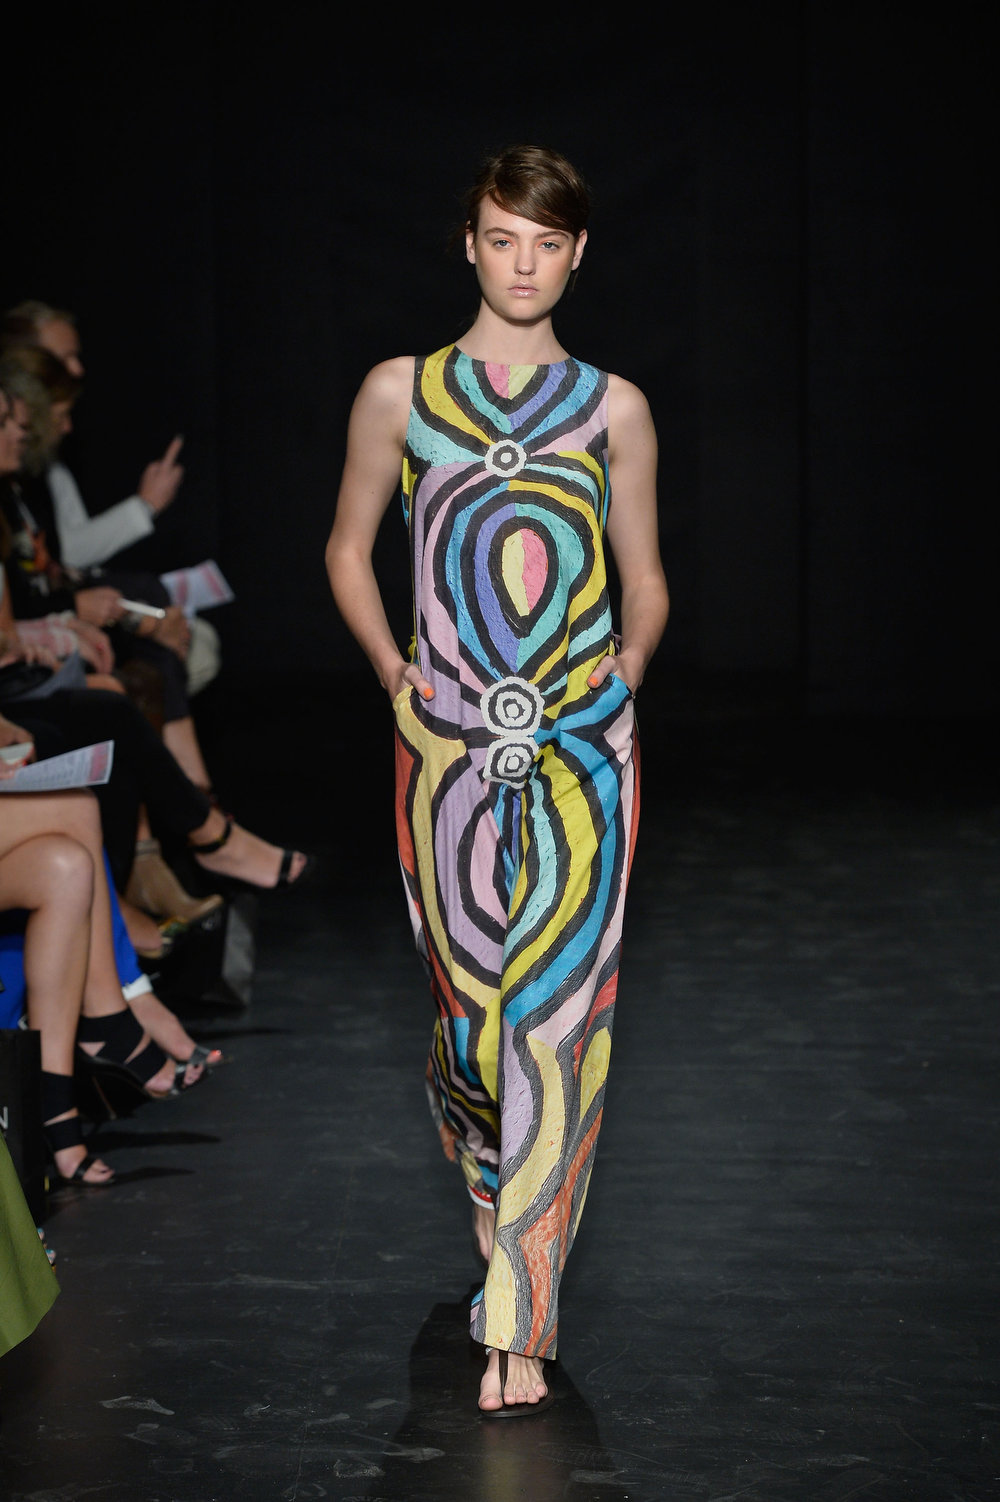 . A model showcases designs on the runway at the Roopa Pemmaraju show during Mercedes-Benz Fashion Week Australia Spring/Summer 2013/14 at Carriageworks on April 8, 2013 in Sydney, Australia.  (Photo by Stefan Gosatti/Getty Images)